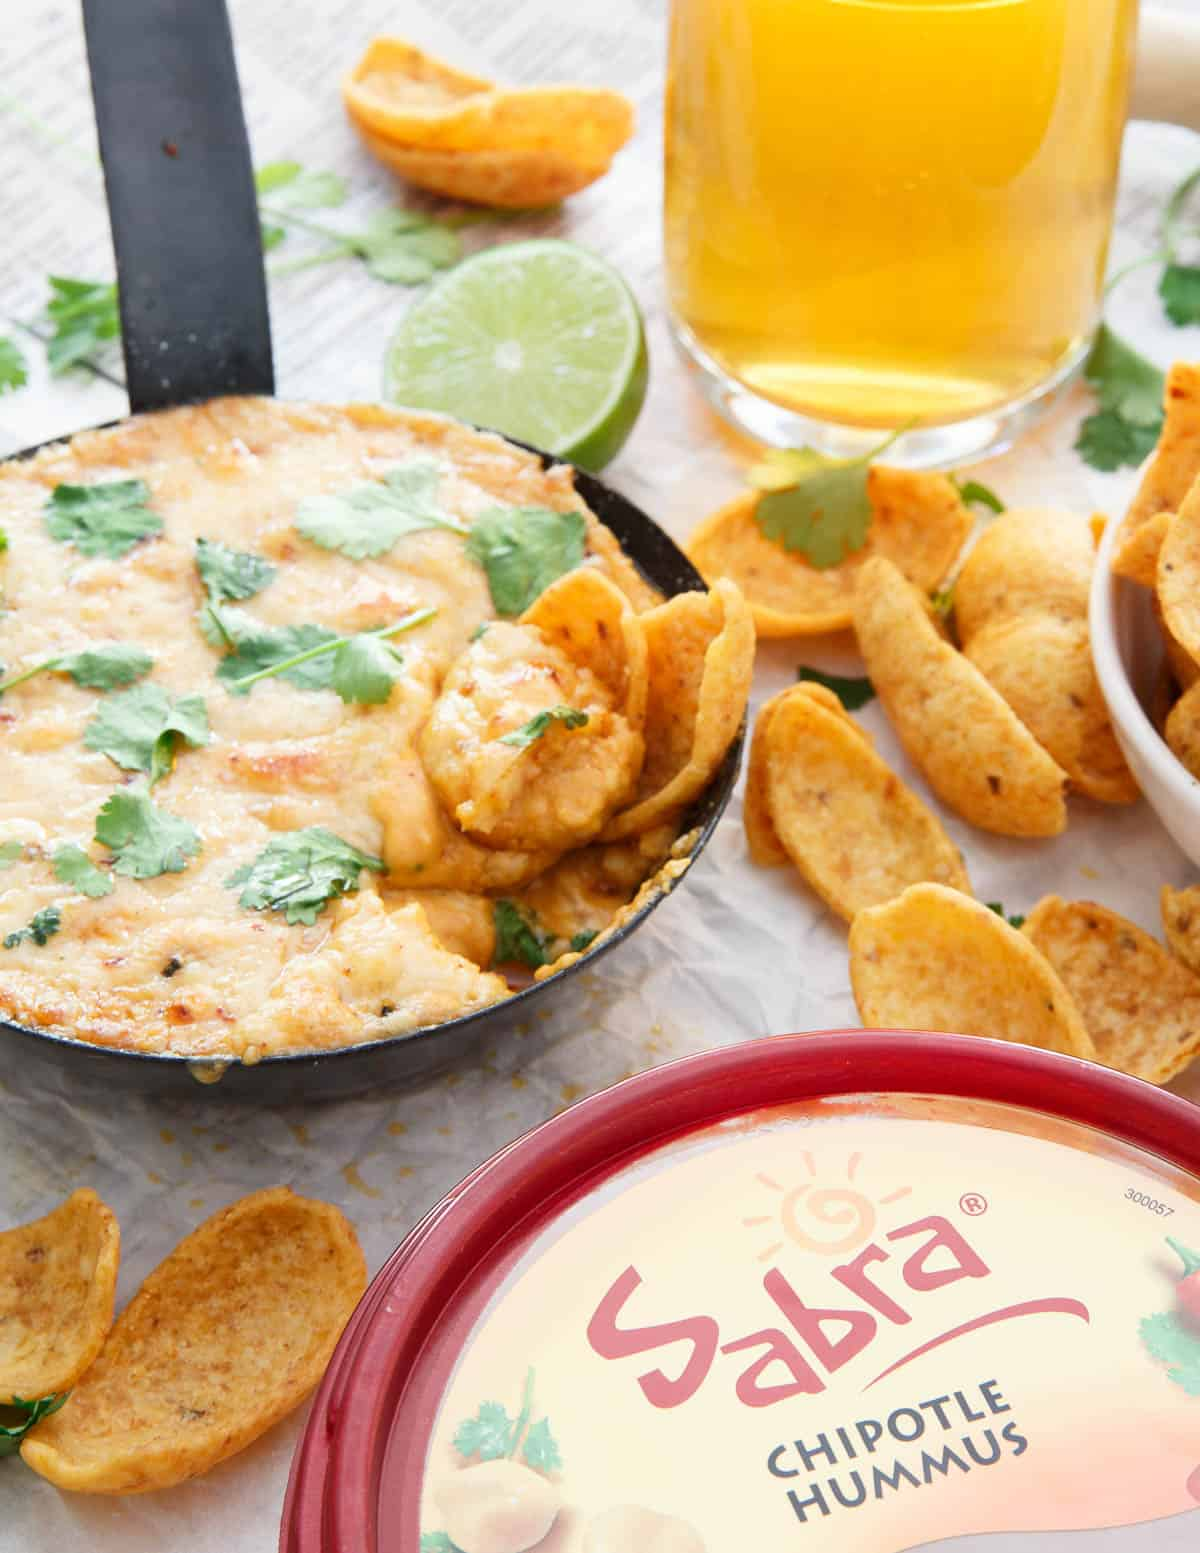 Sabra's chipotle hummus and pepper jack cheese get mixed together and baked off in this Chipotle Hummus Fundido!